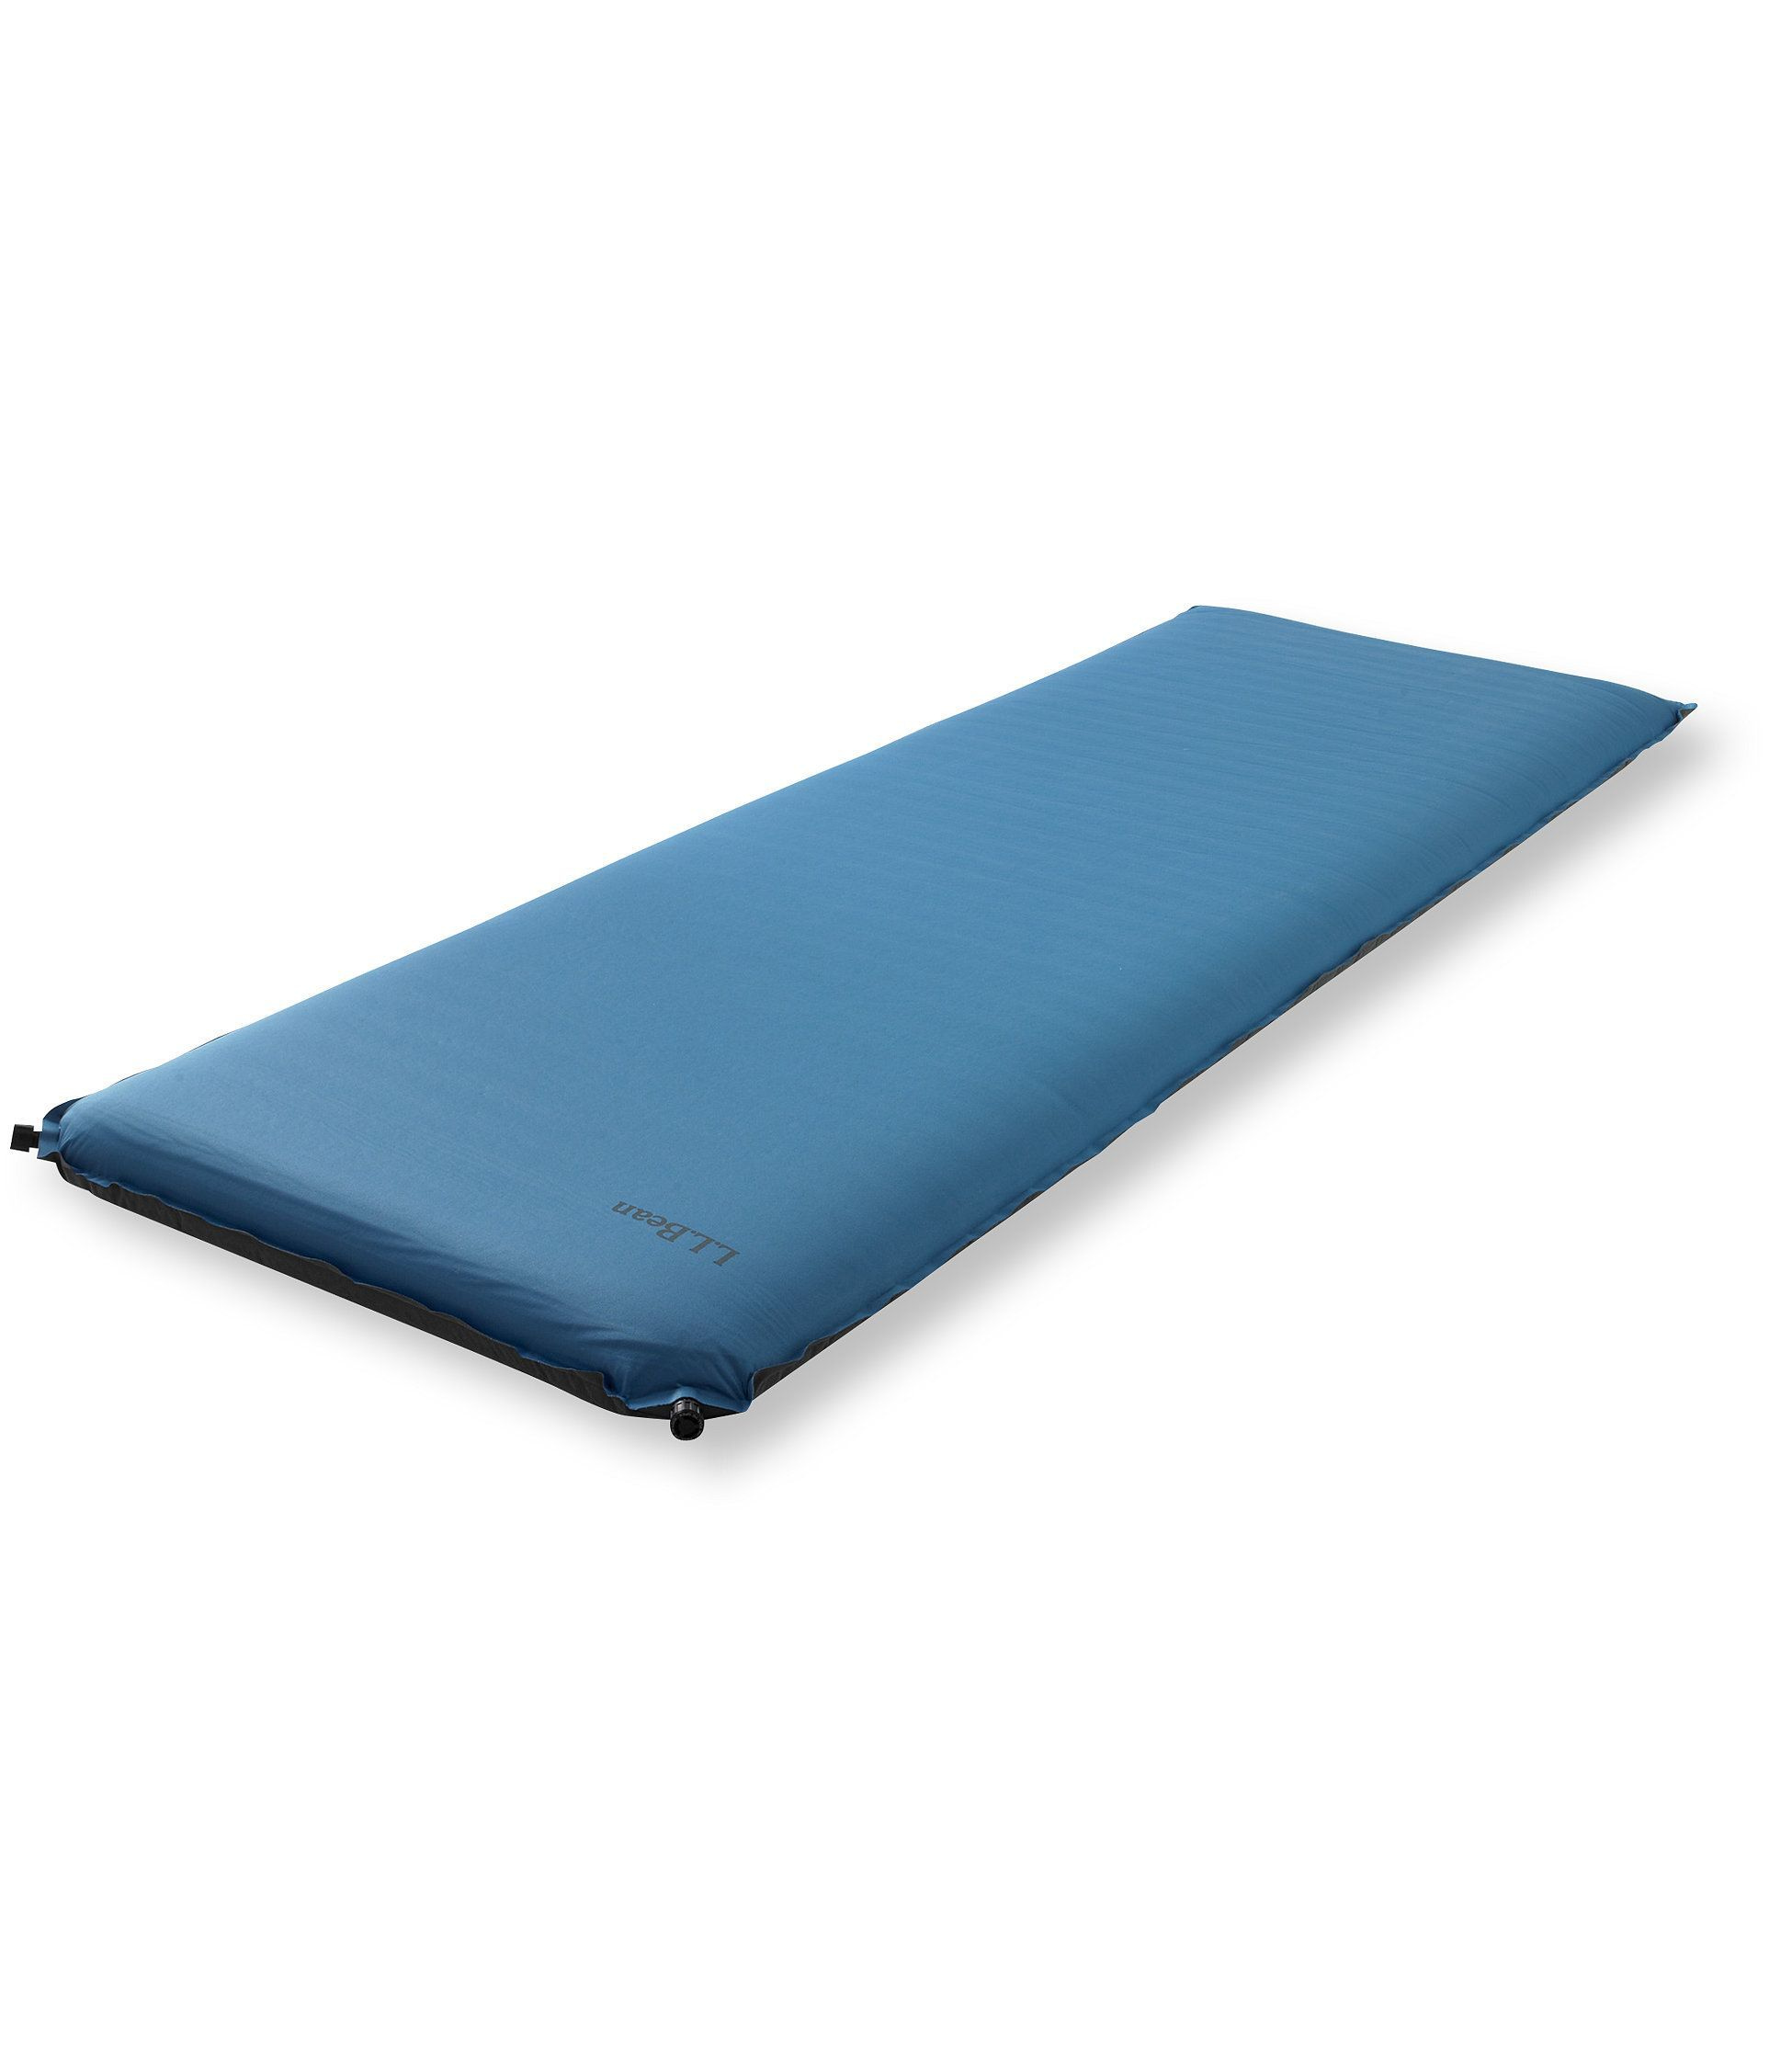 shop me mats sleeping brace equipment rehab yoga mat floor mobility